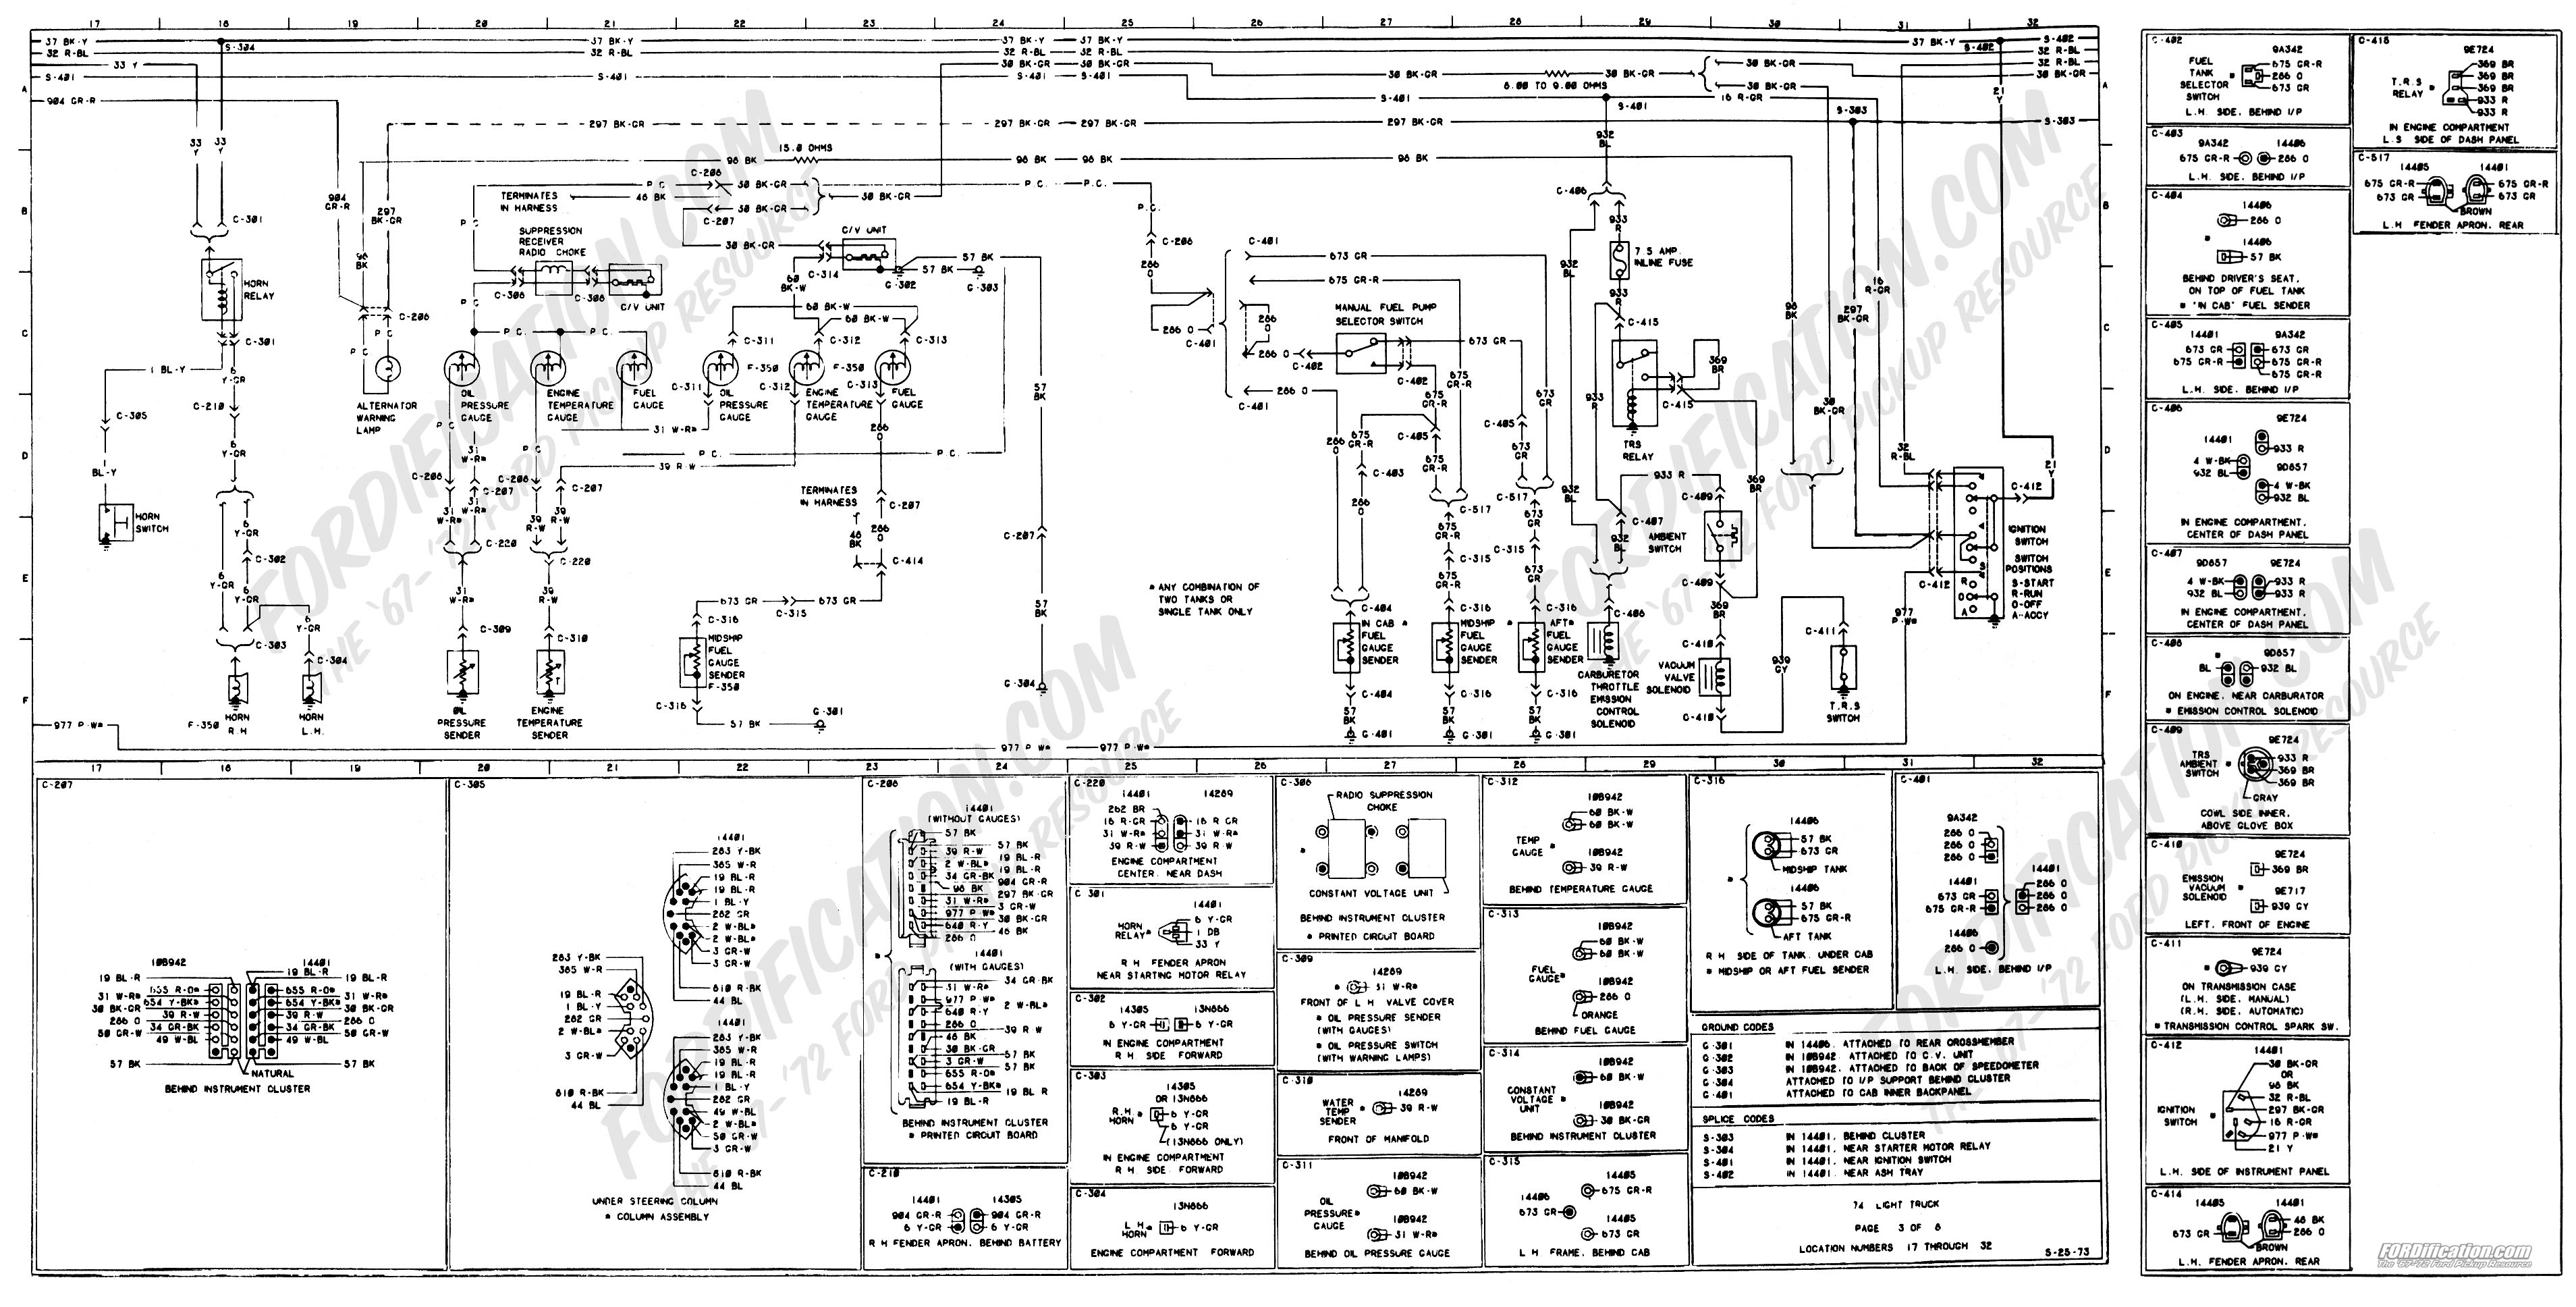 1984 ford f150 wireing diagram mounted solenoid started switch 1979 Ford F150 Wiring Diagram 1979 ford f150 headlight wiring diagram wiring diagram, wiring diagram 1979 ford f150 wiring diagram